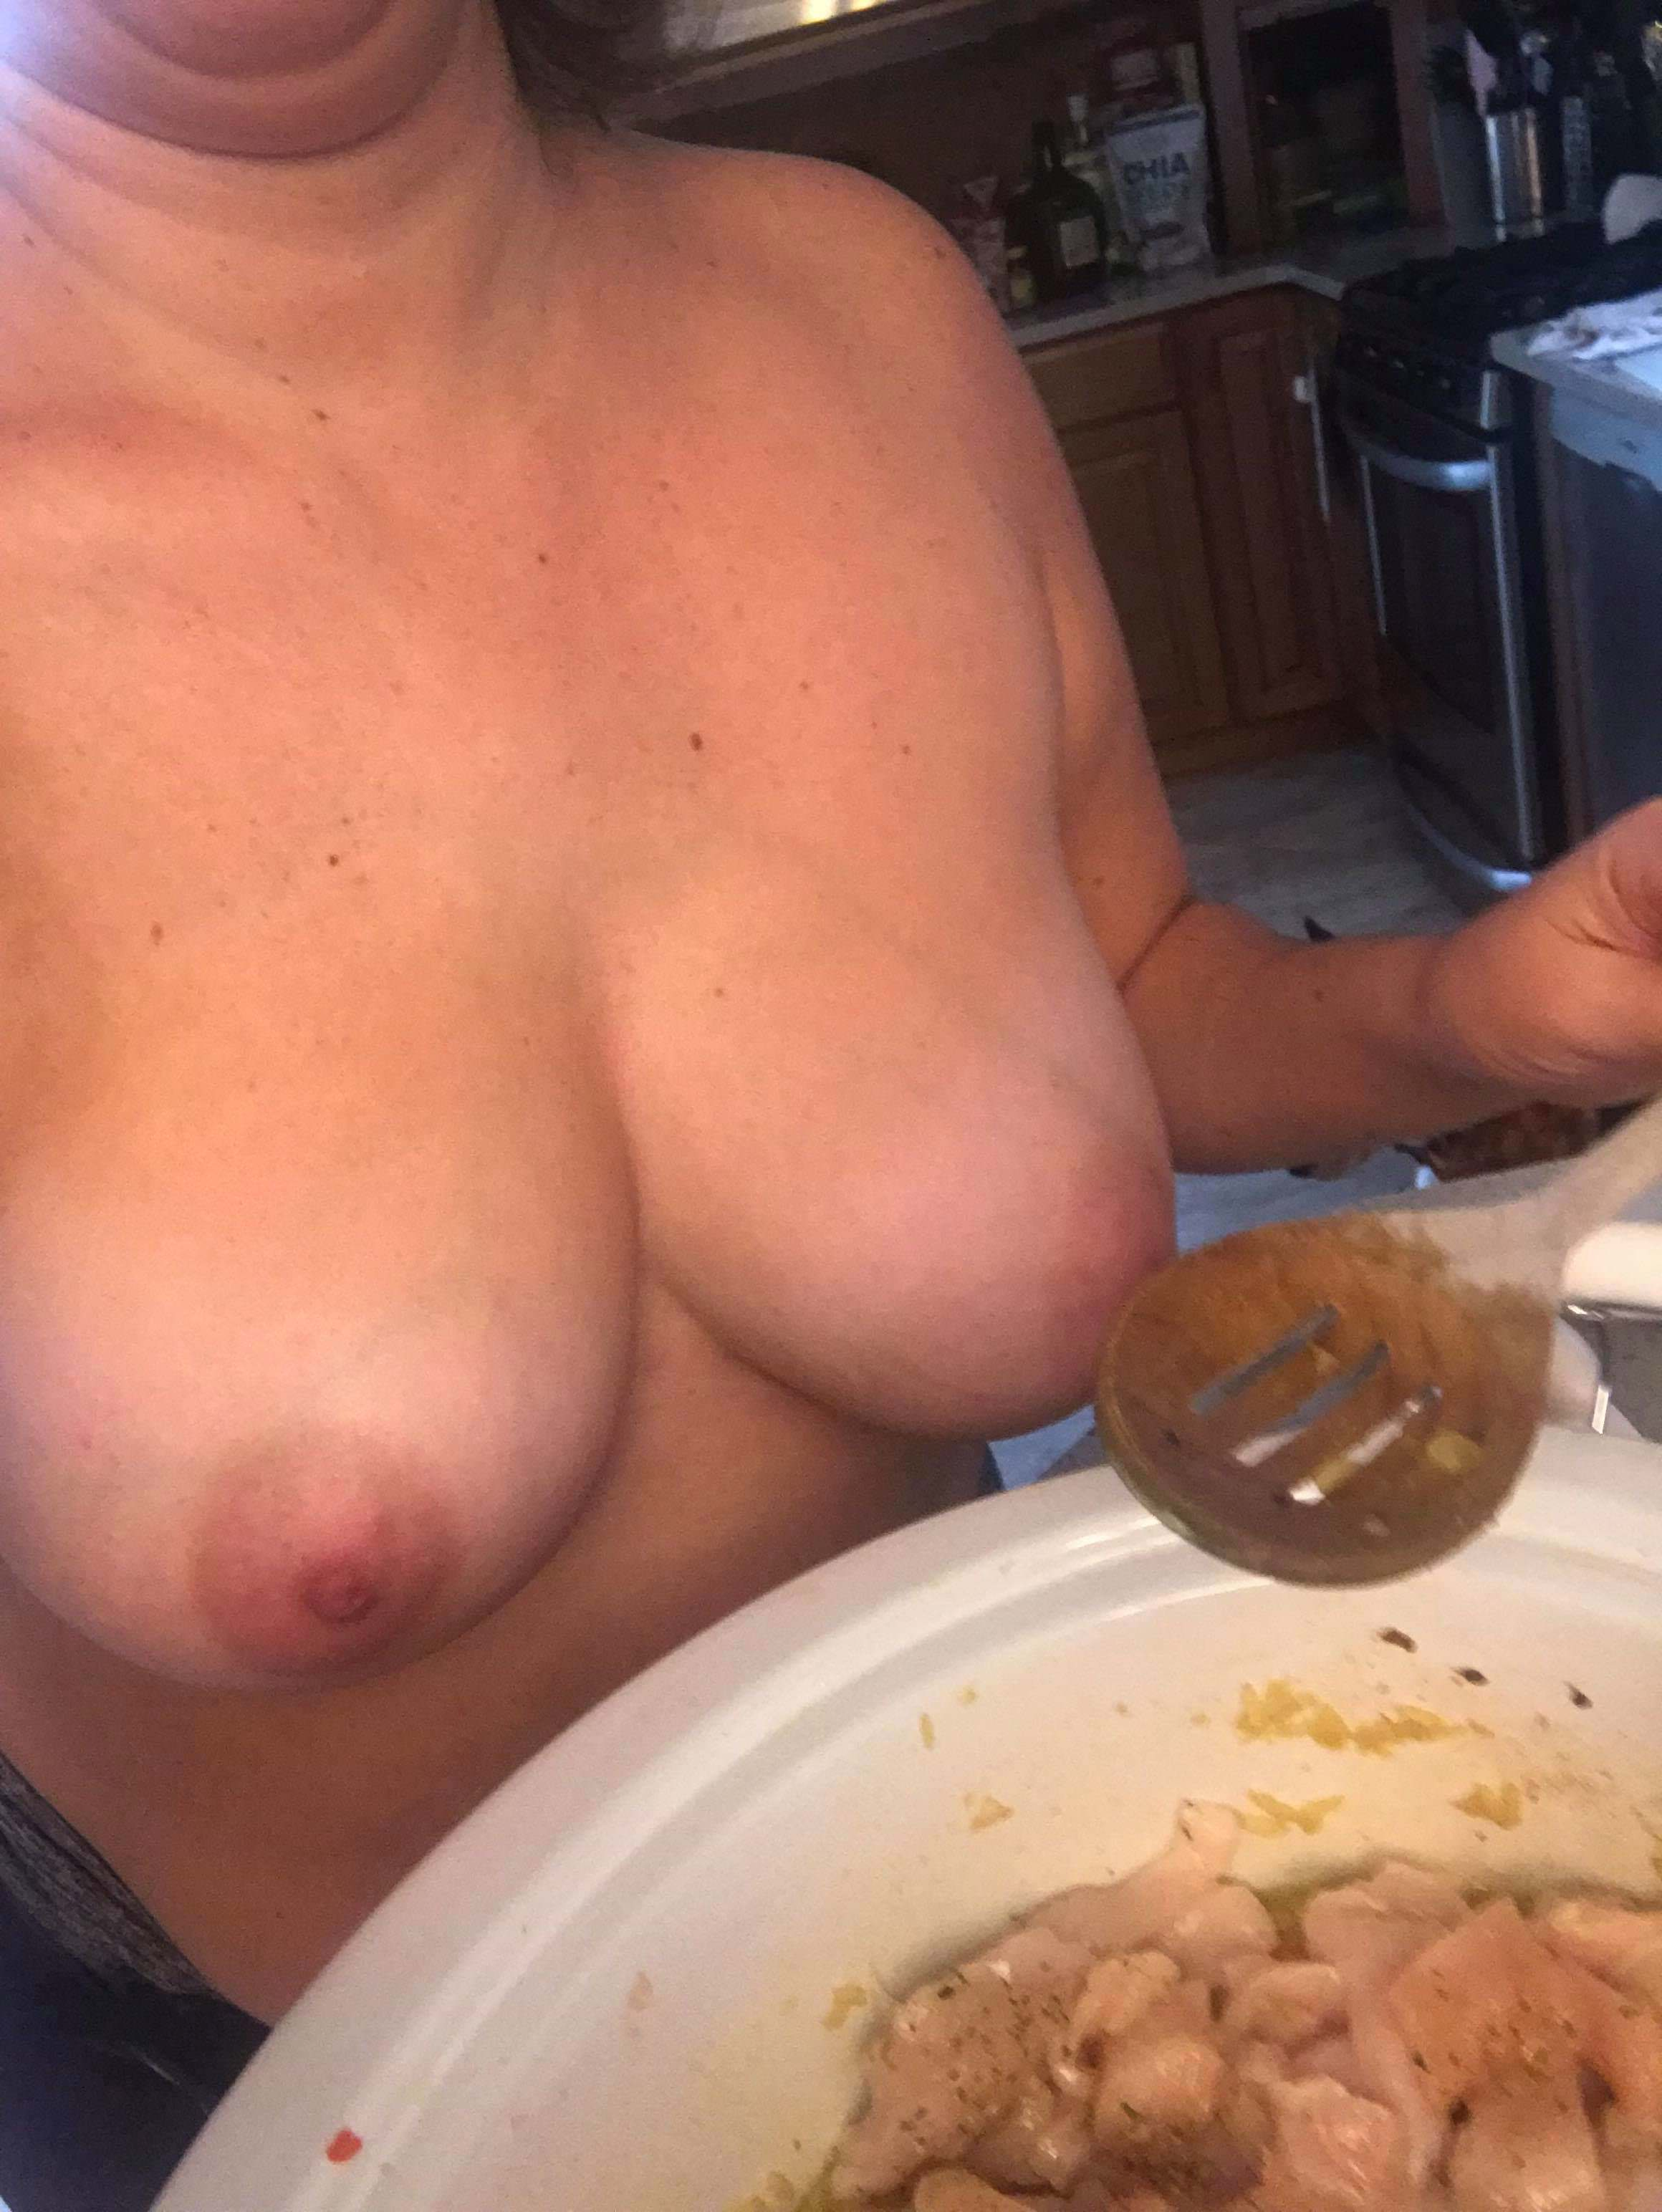 Amazing Home Porn can't wait to get home. dinner looks amazing. [f] porn photo